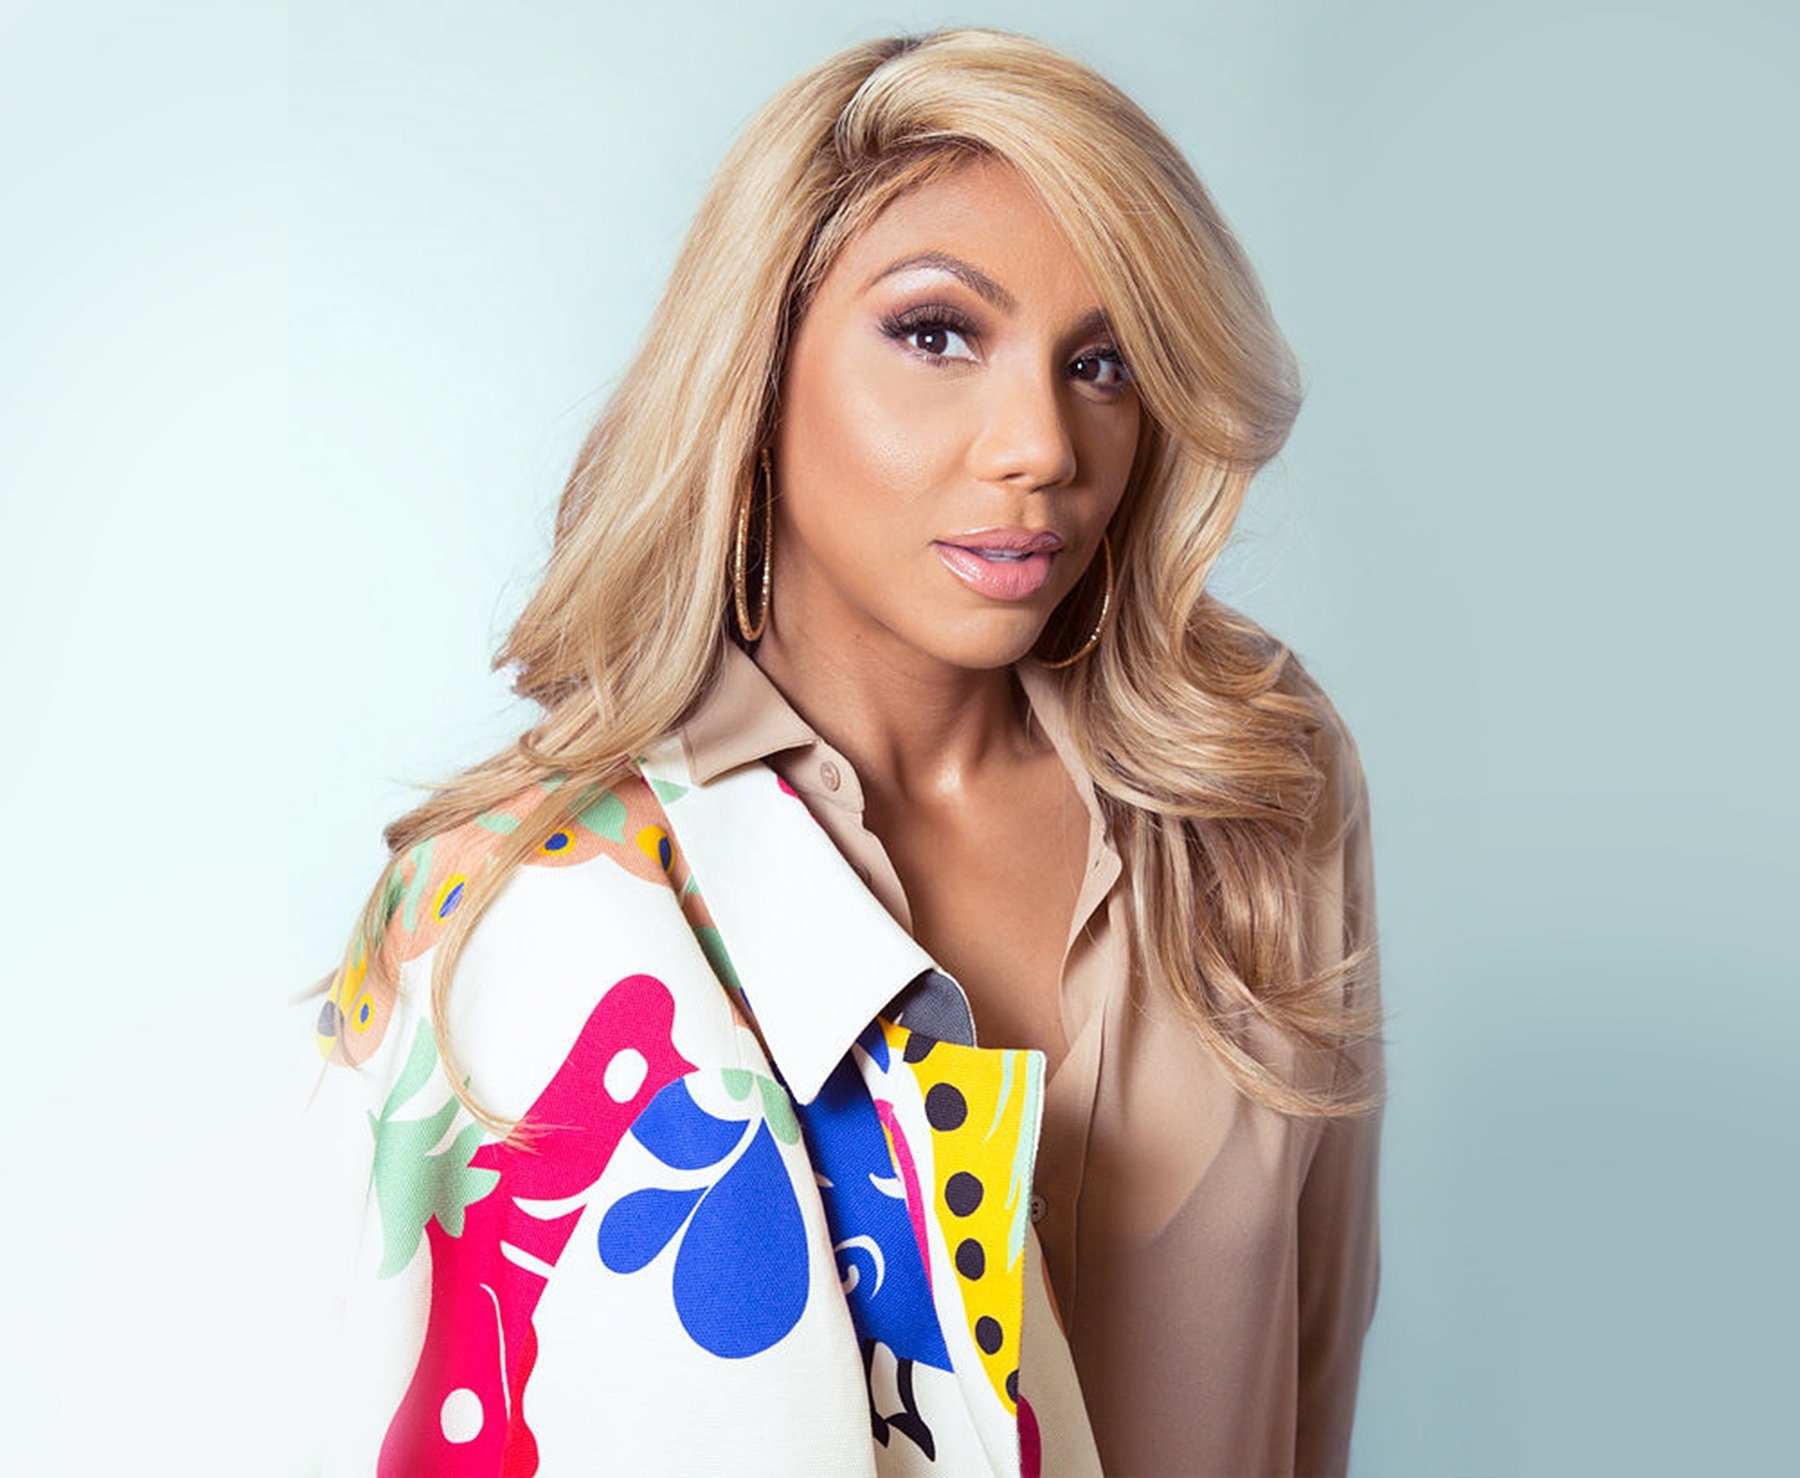 Tamar Braxton Reveals The Location Where She'll Be Spending Her Birthday - Watch The Video